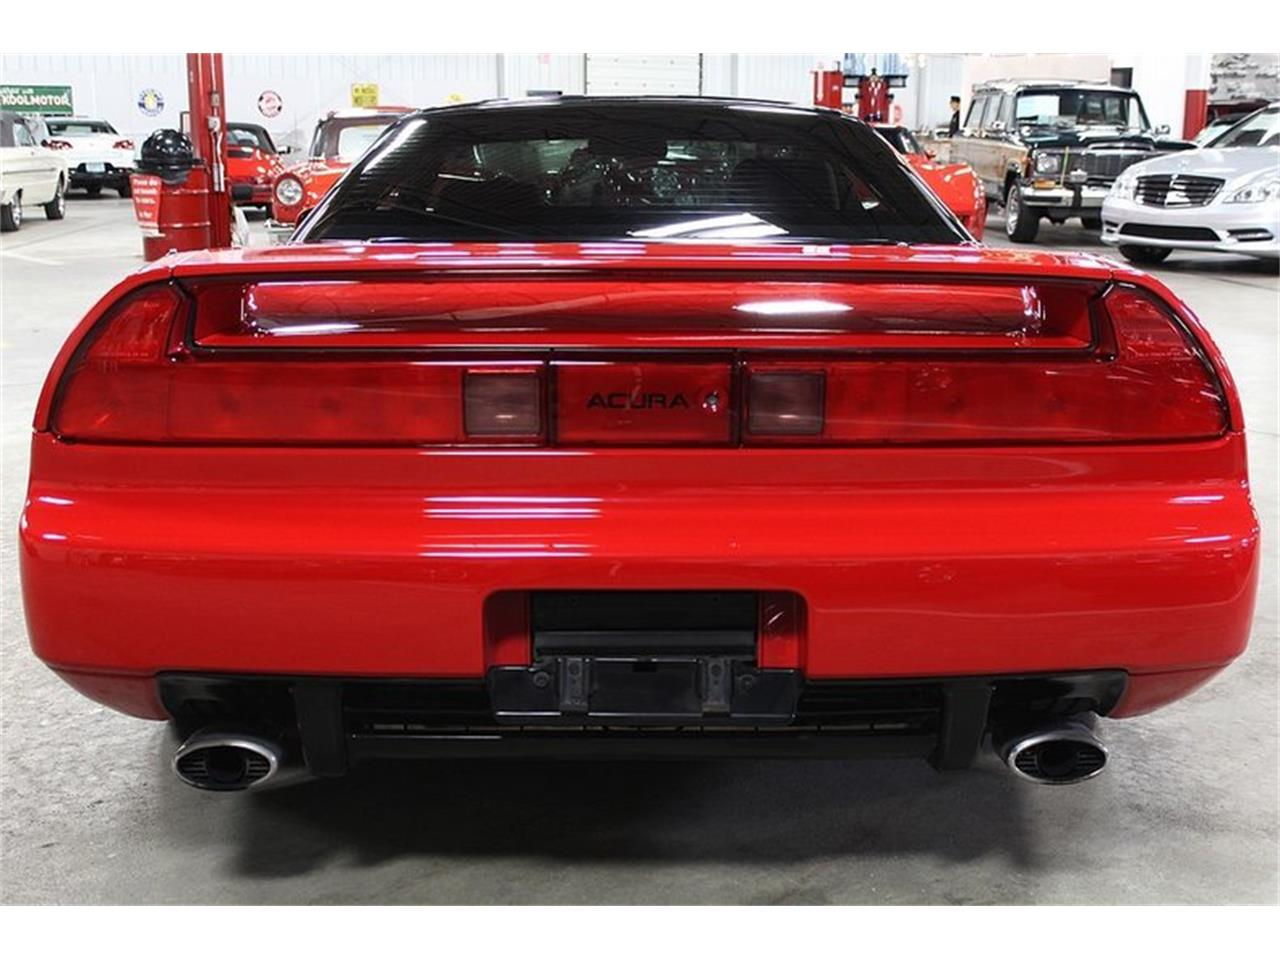 Large Picture of '91 Acura NSX located in Kentwood Michigan - $57,900.00 - LSBJ